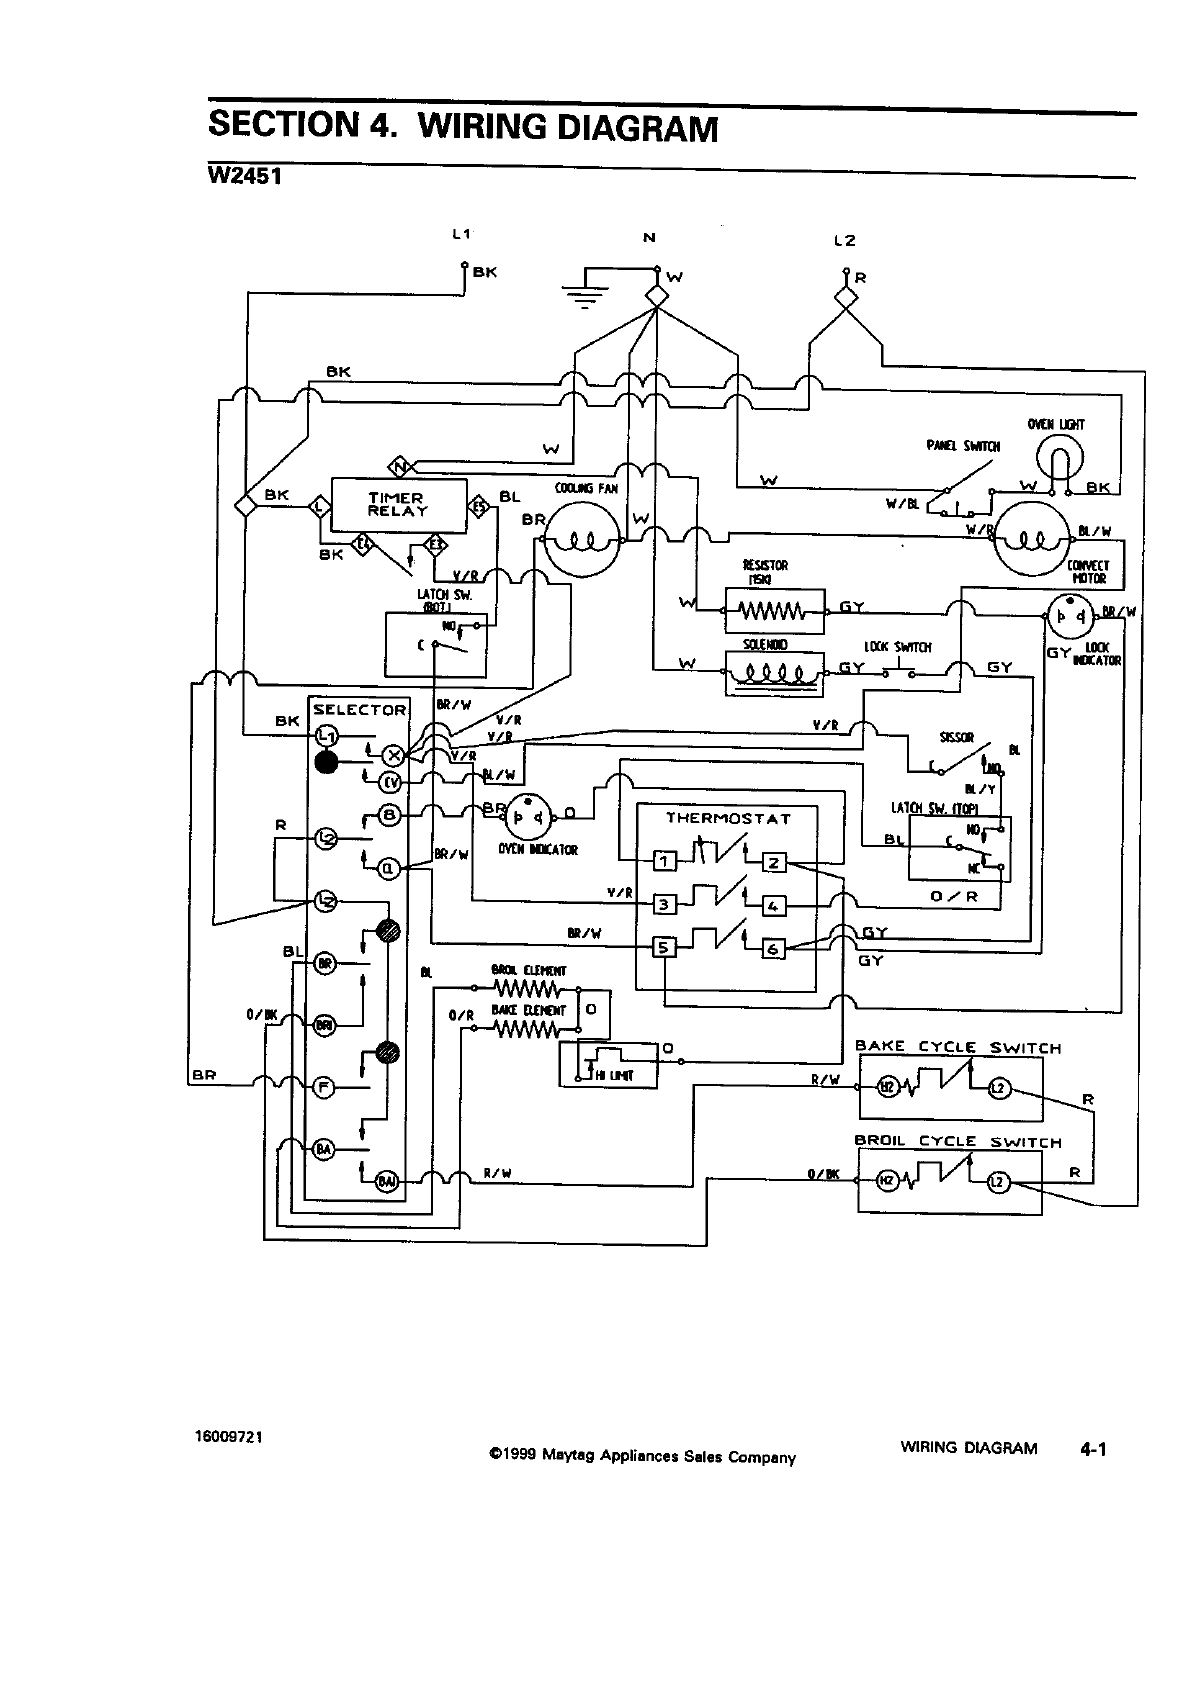 52b2f415 78fa 4259 88c0 be210120d02a bg21 jenn air wiring diagram on jenn download wirning diagrams  at crackthecode.co